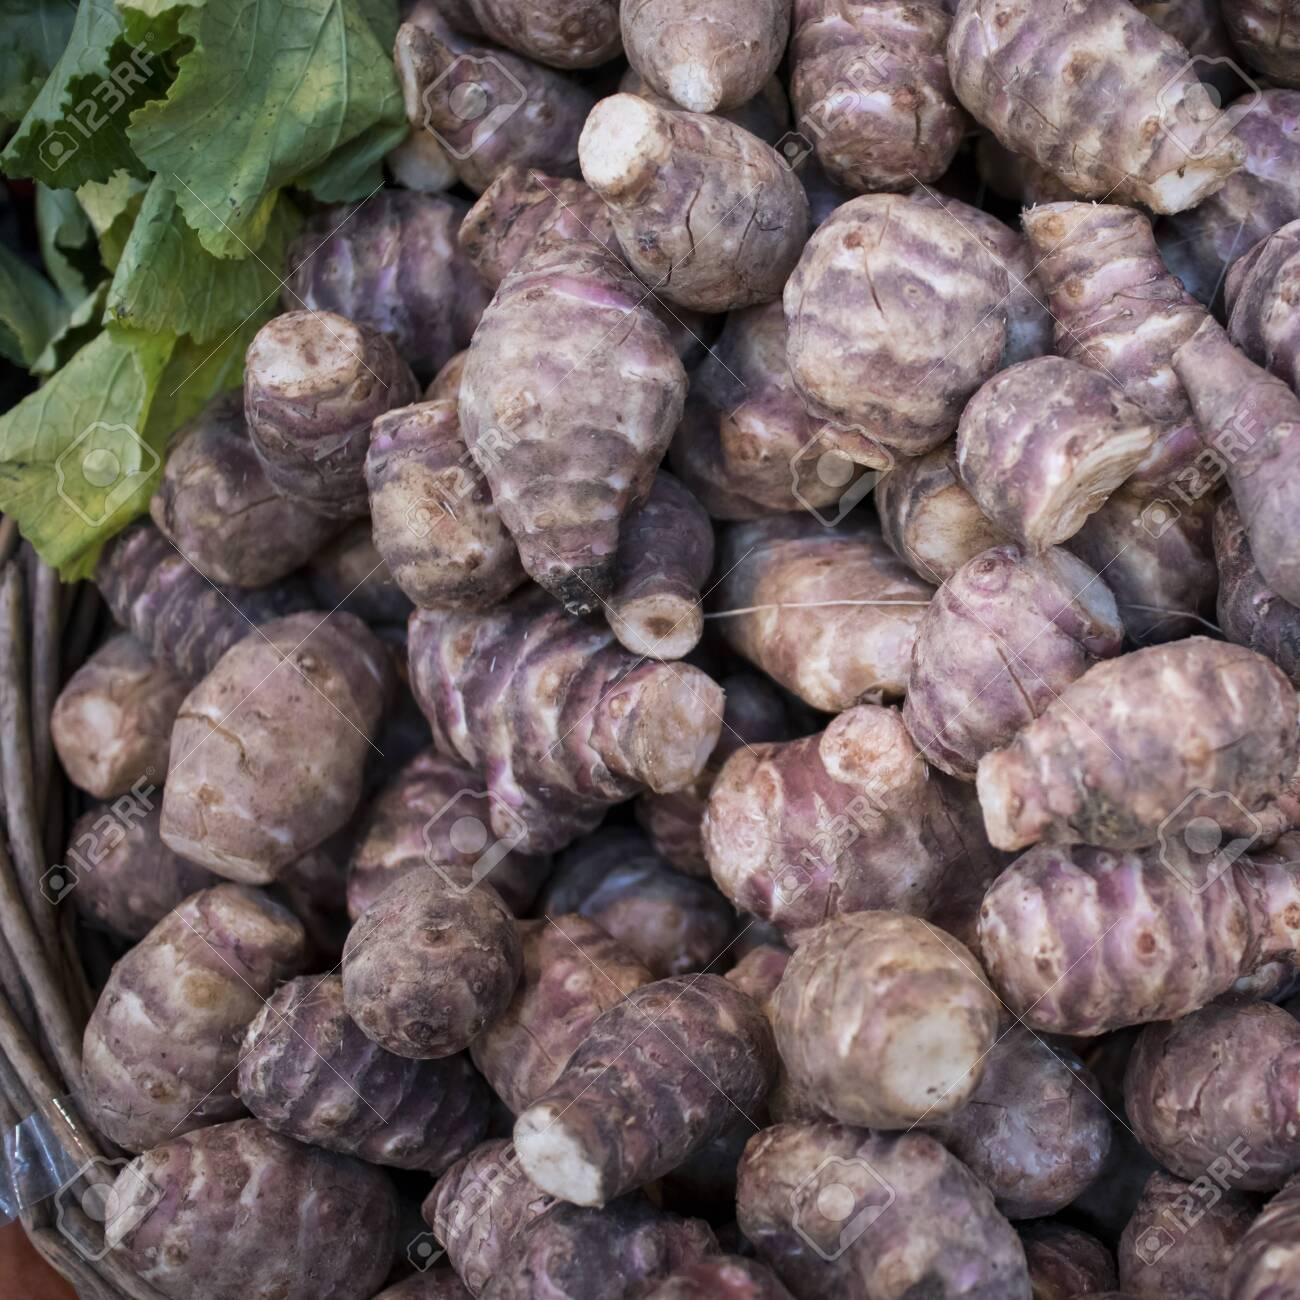 Fresh Pink Jerusalem Artichoke In The Box For Sale In The Market Stock Photo Picture And Royalty Free Image Image 139479318